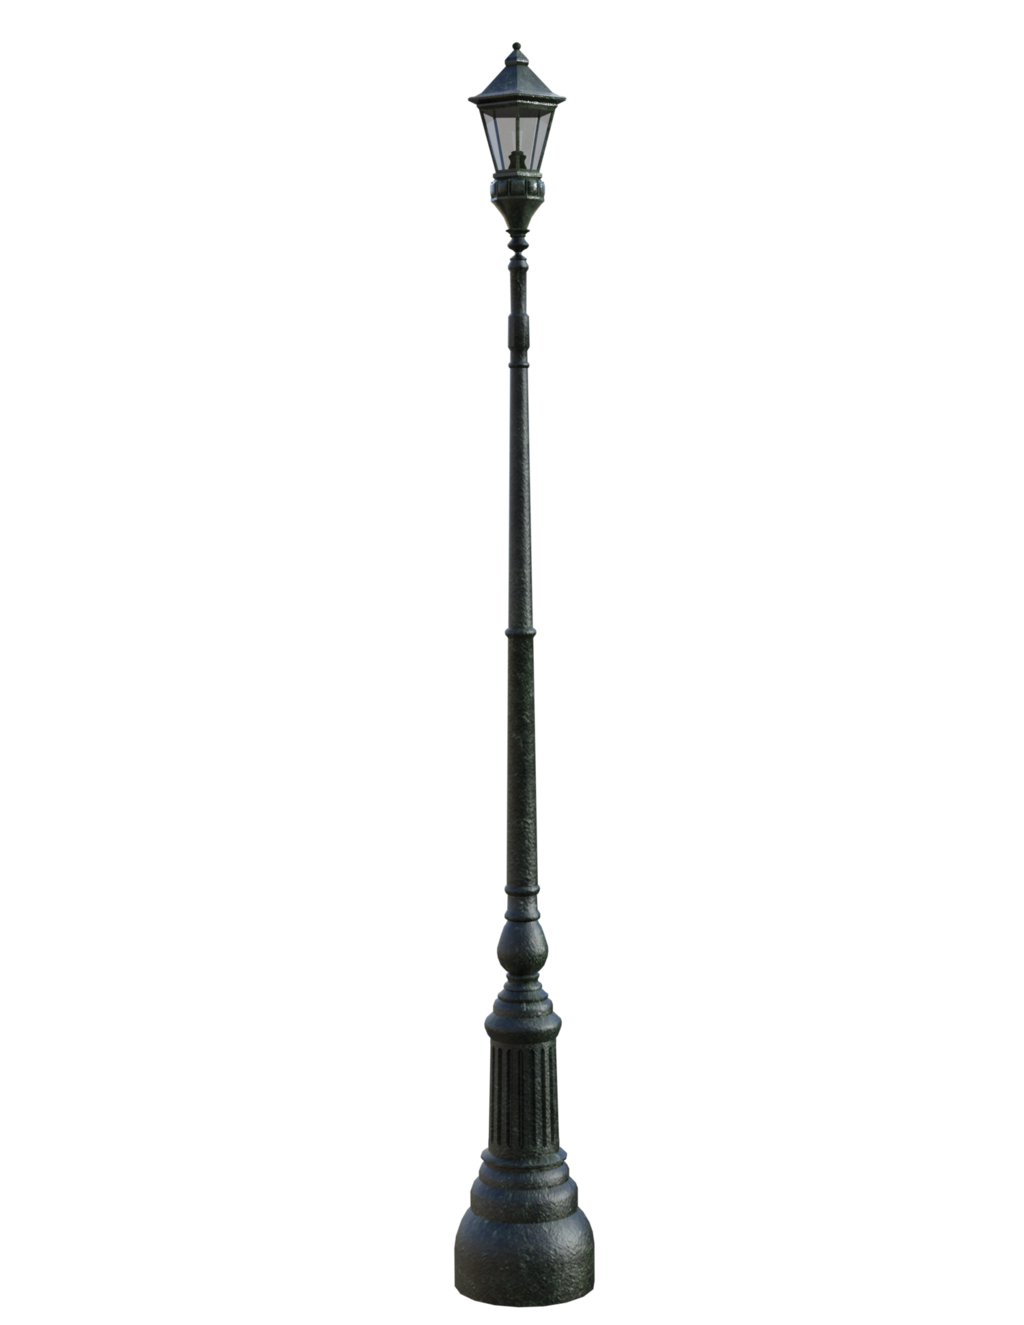 Street light png image. Lamp clipart white background